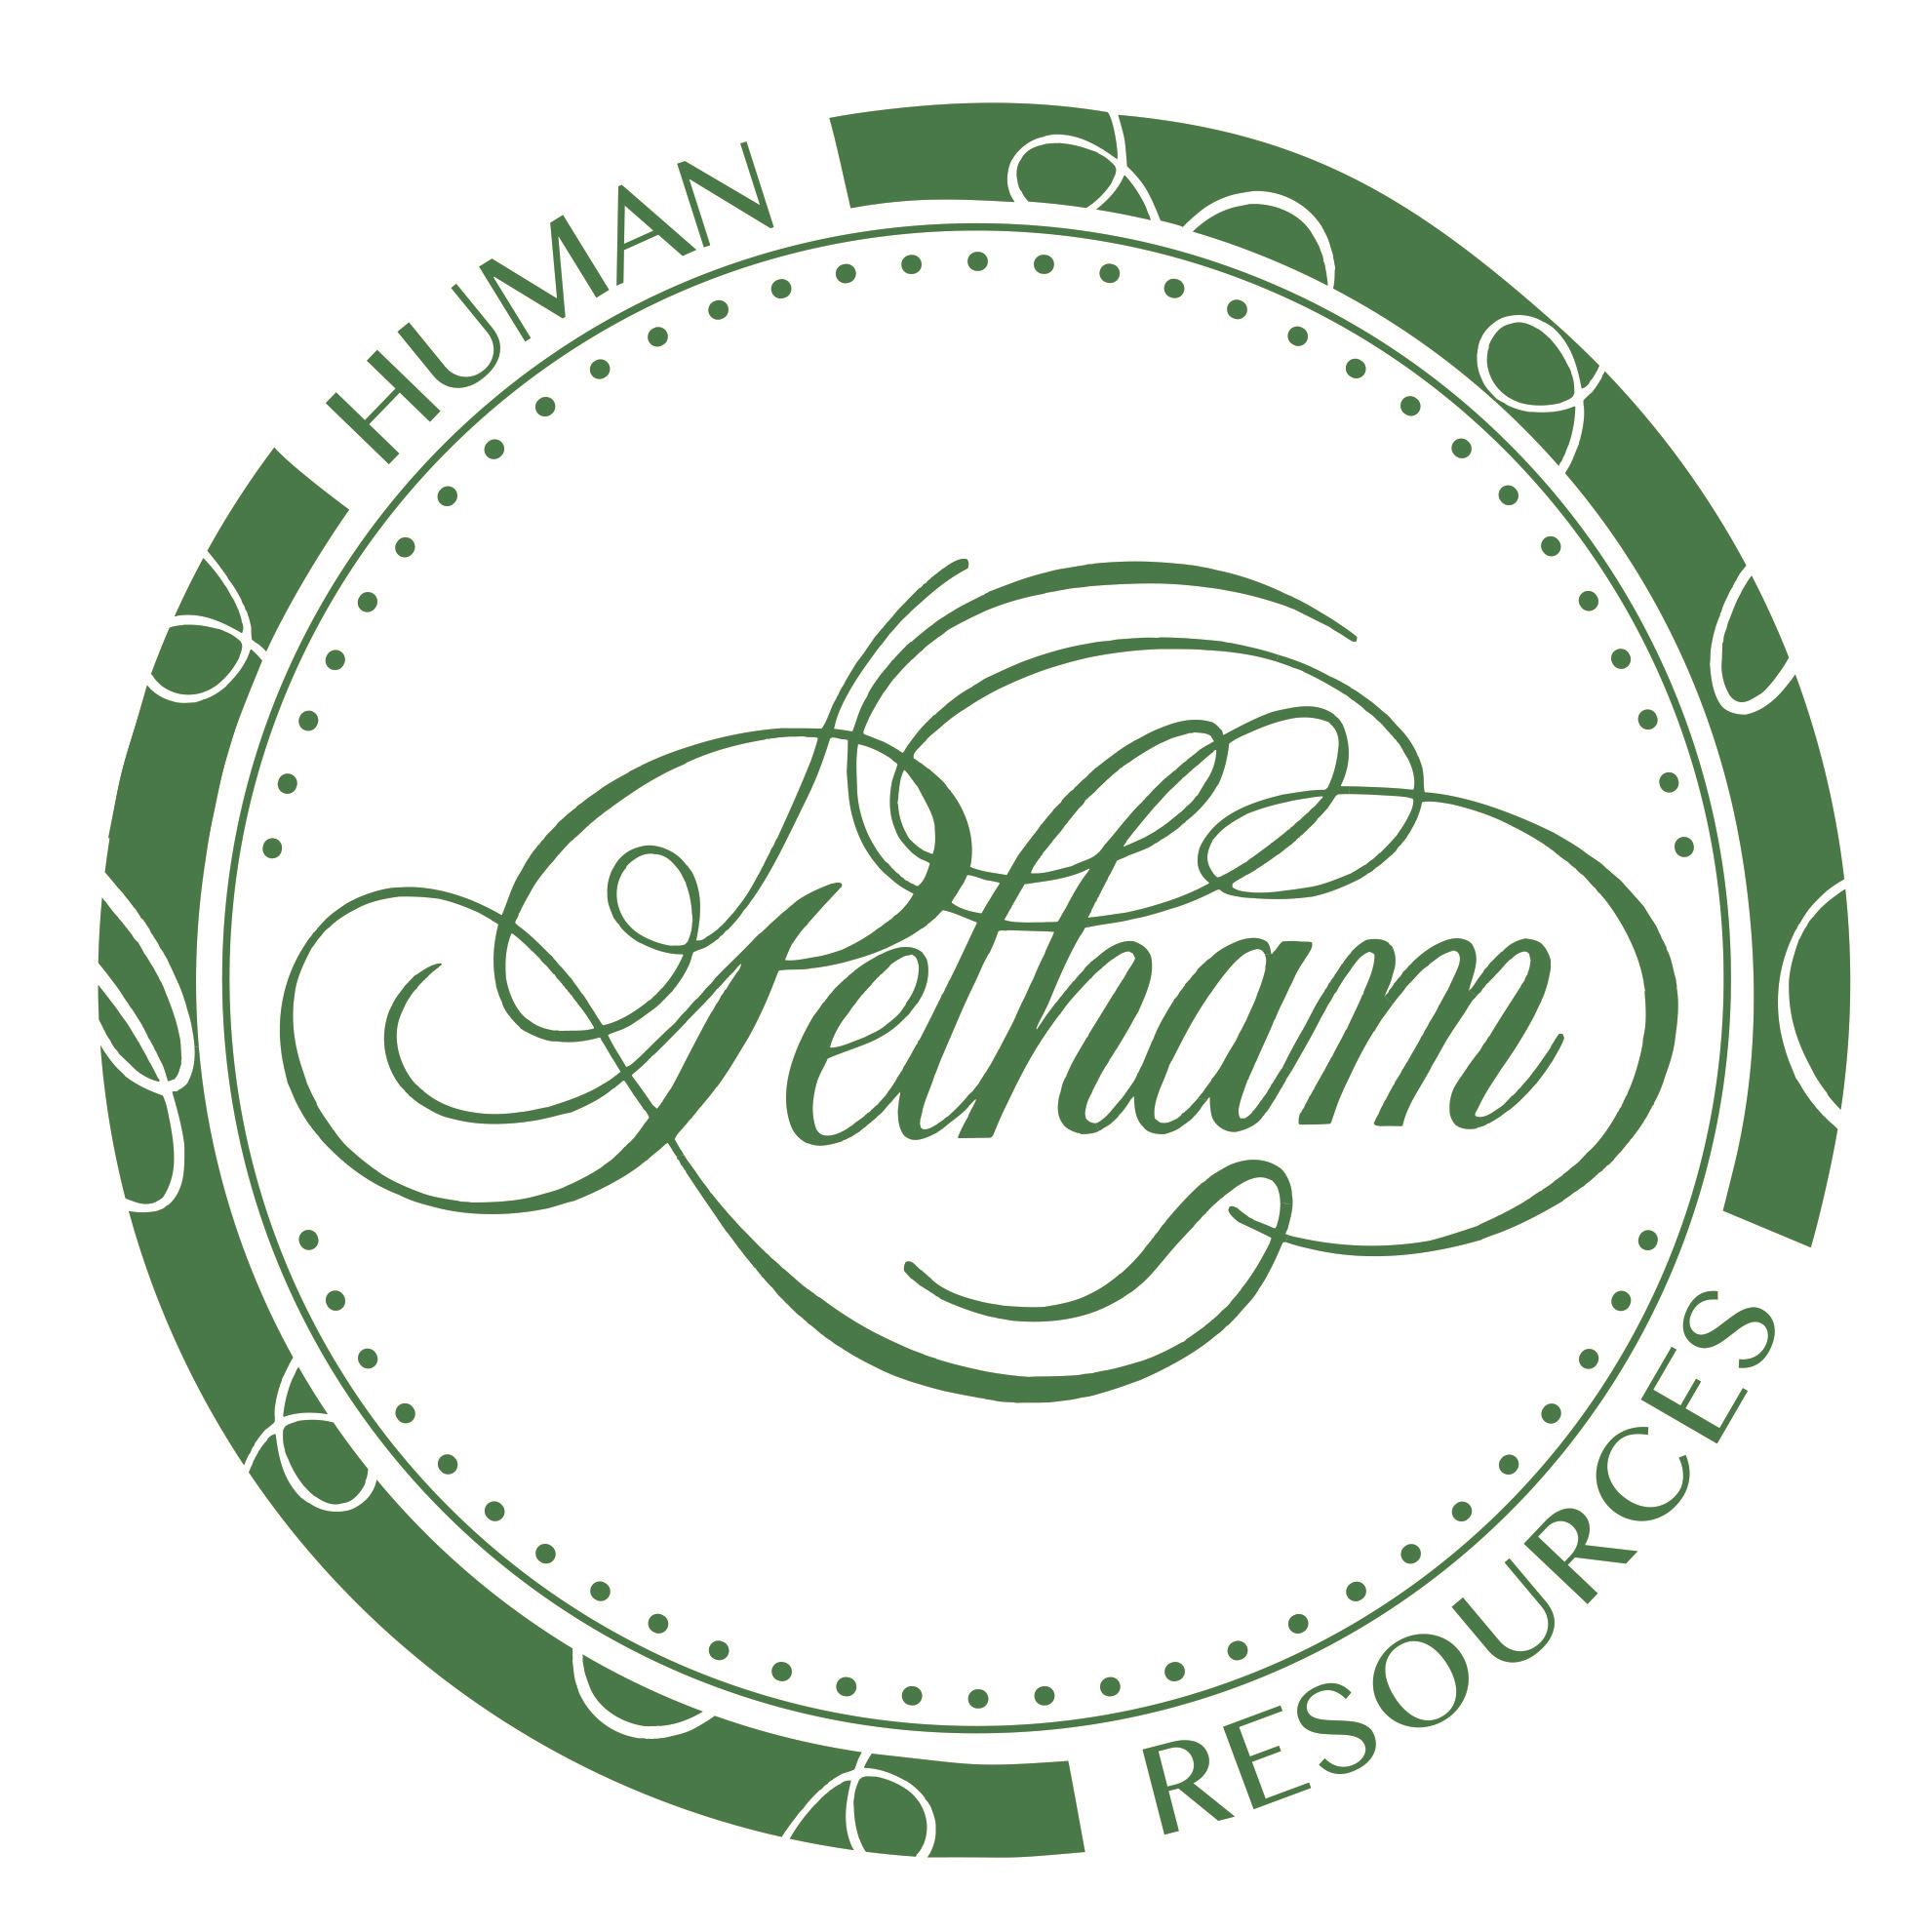 Human Resources Pelham logo